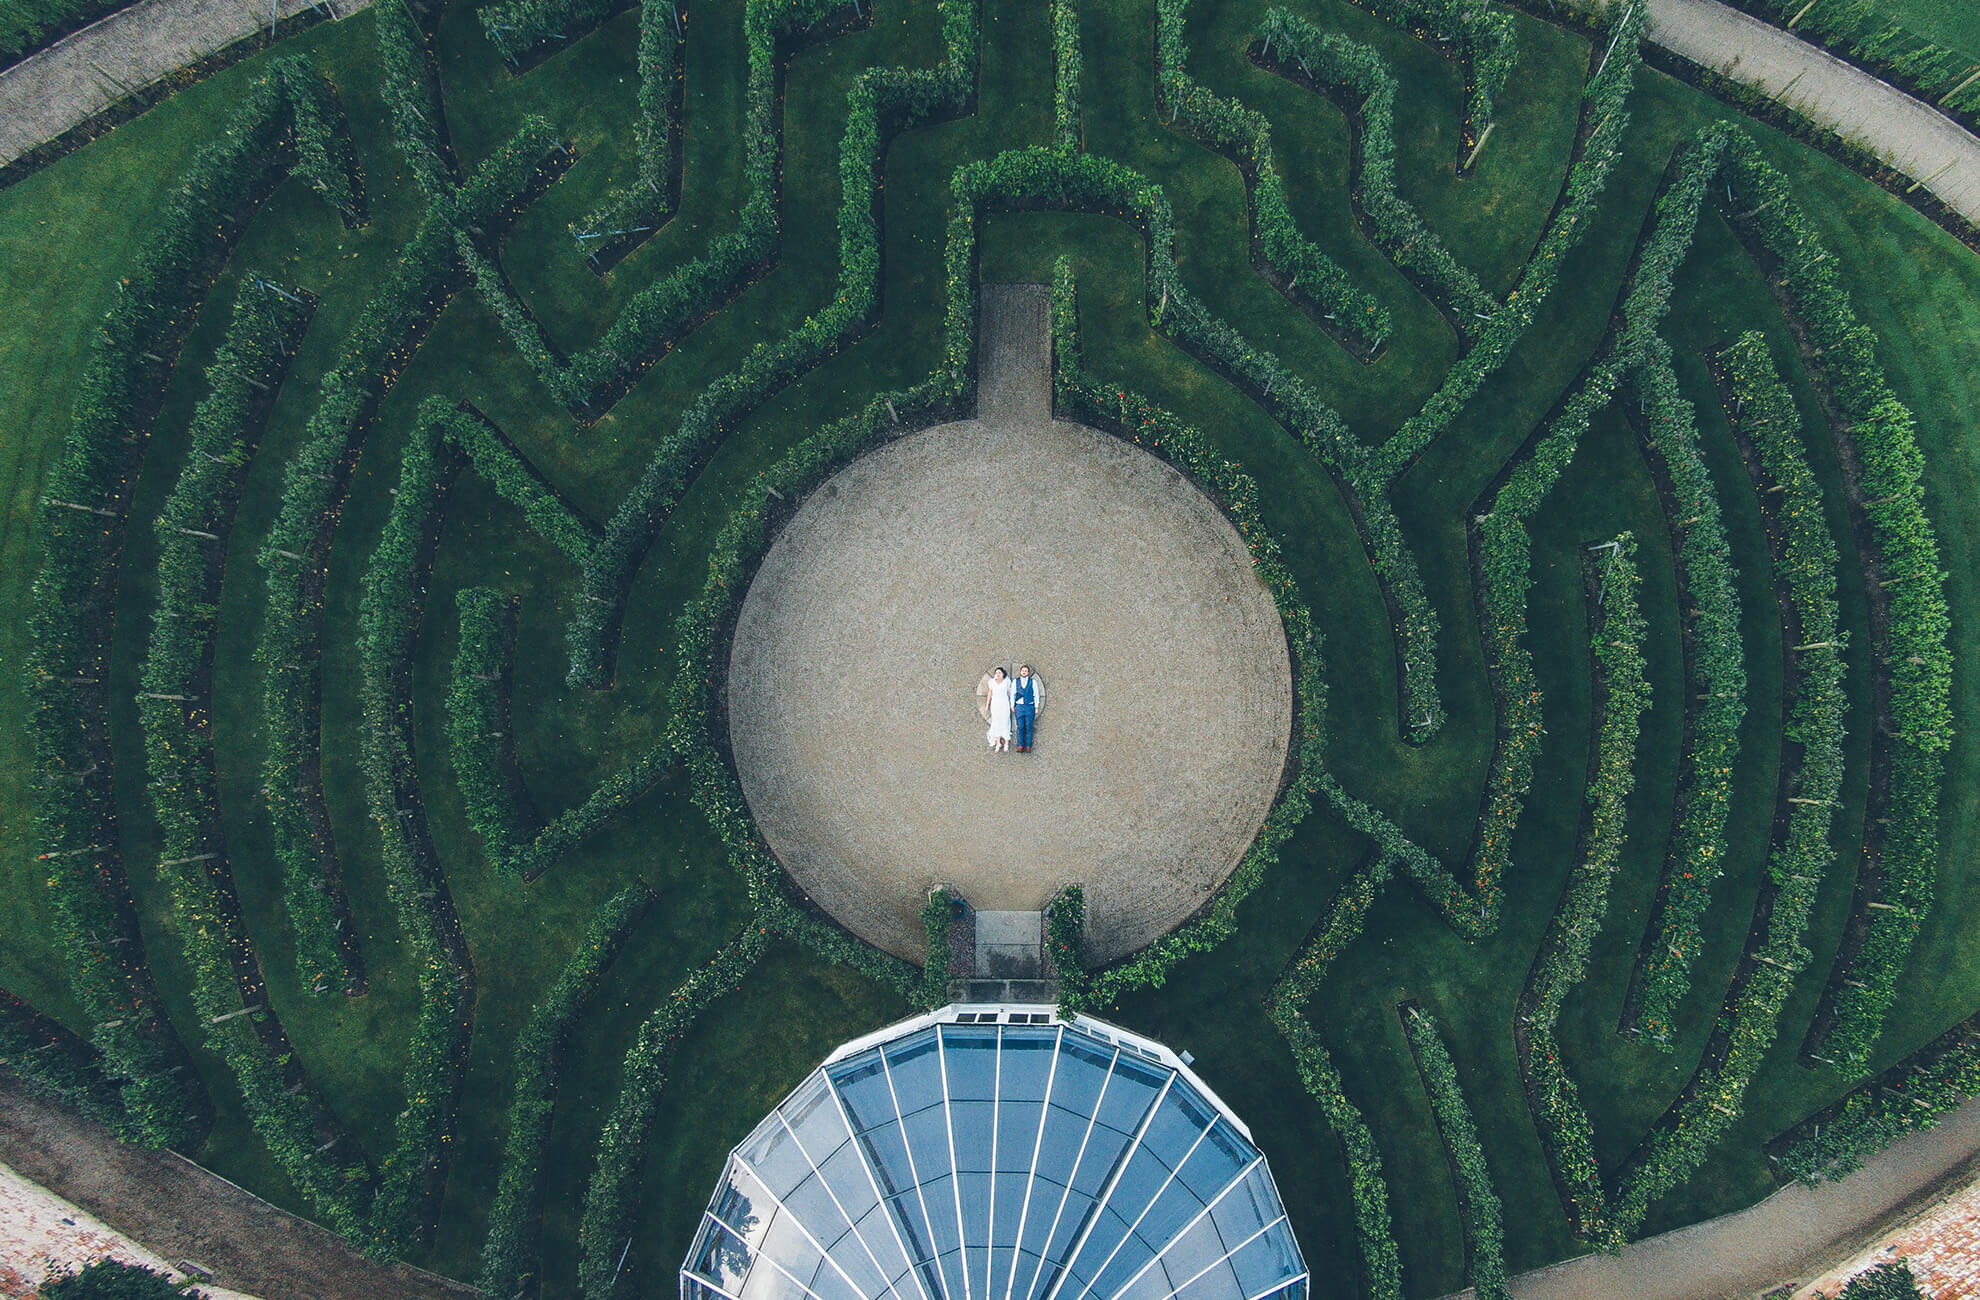 A stunning aerial shot of the newlyweds in the centre of the fruit tree maze at Combermere Abbey wedding venue in Cheshire